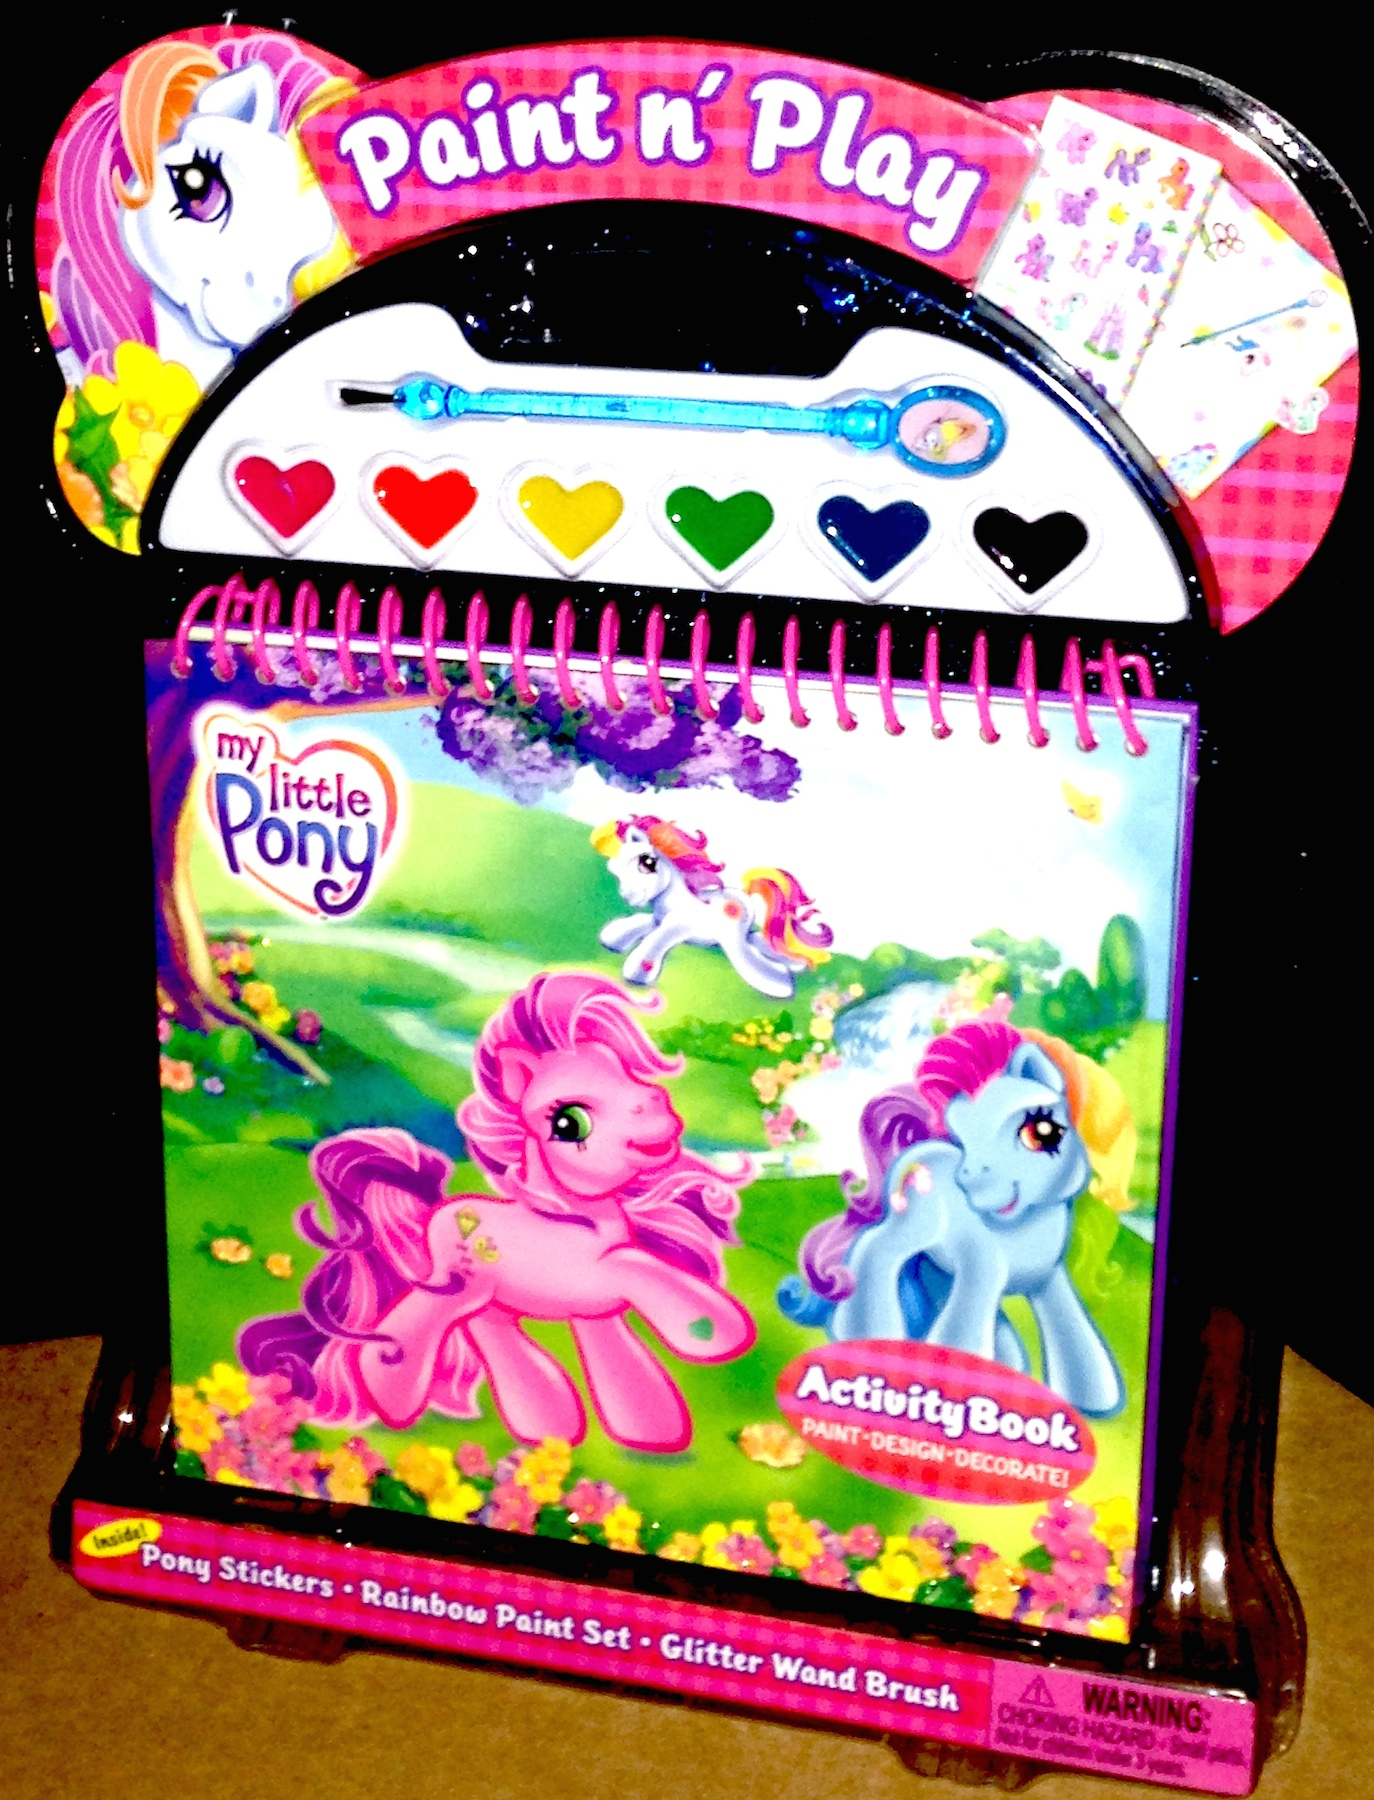 My Little Pony Paint N Play Paints Set Activity Book Plus Stickers Sticker Books Pretty Pink